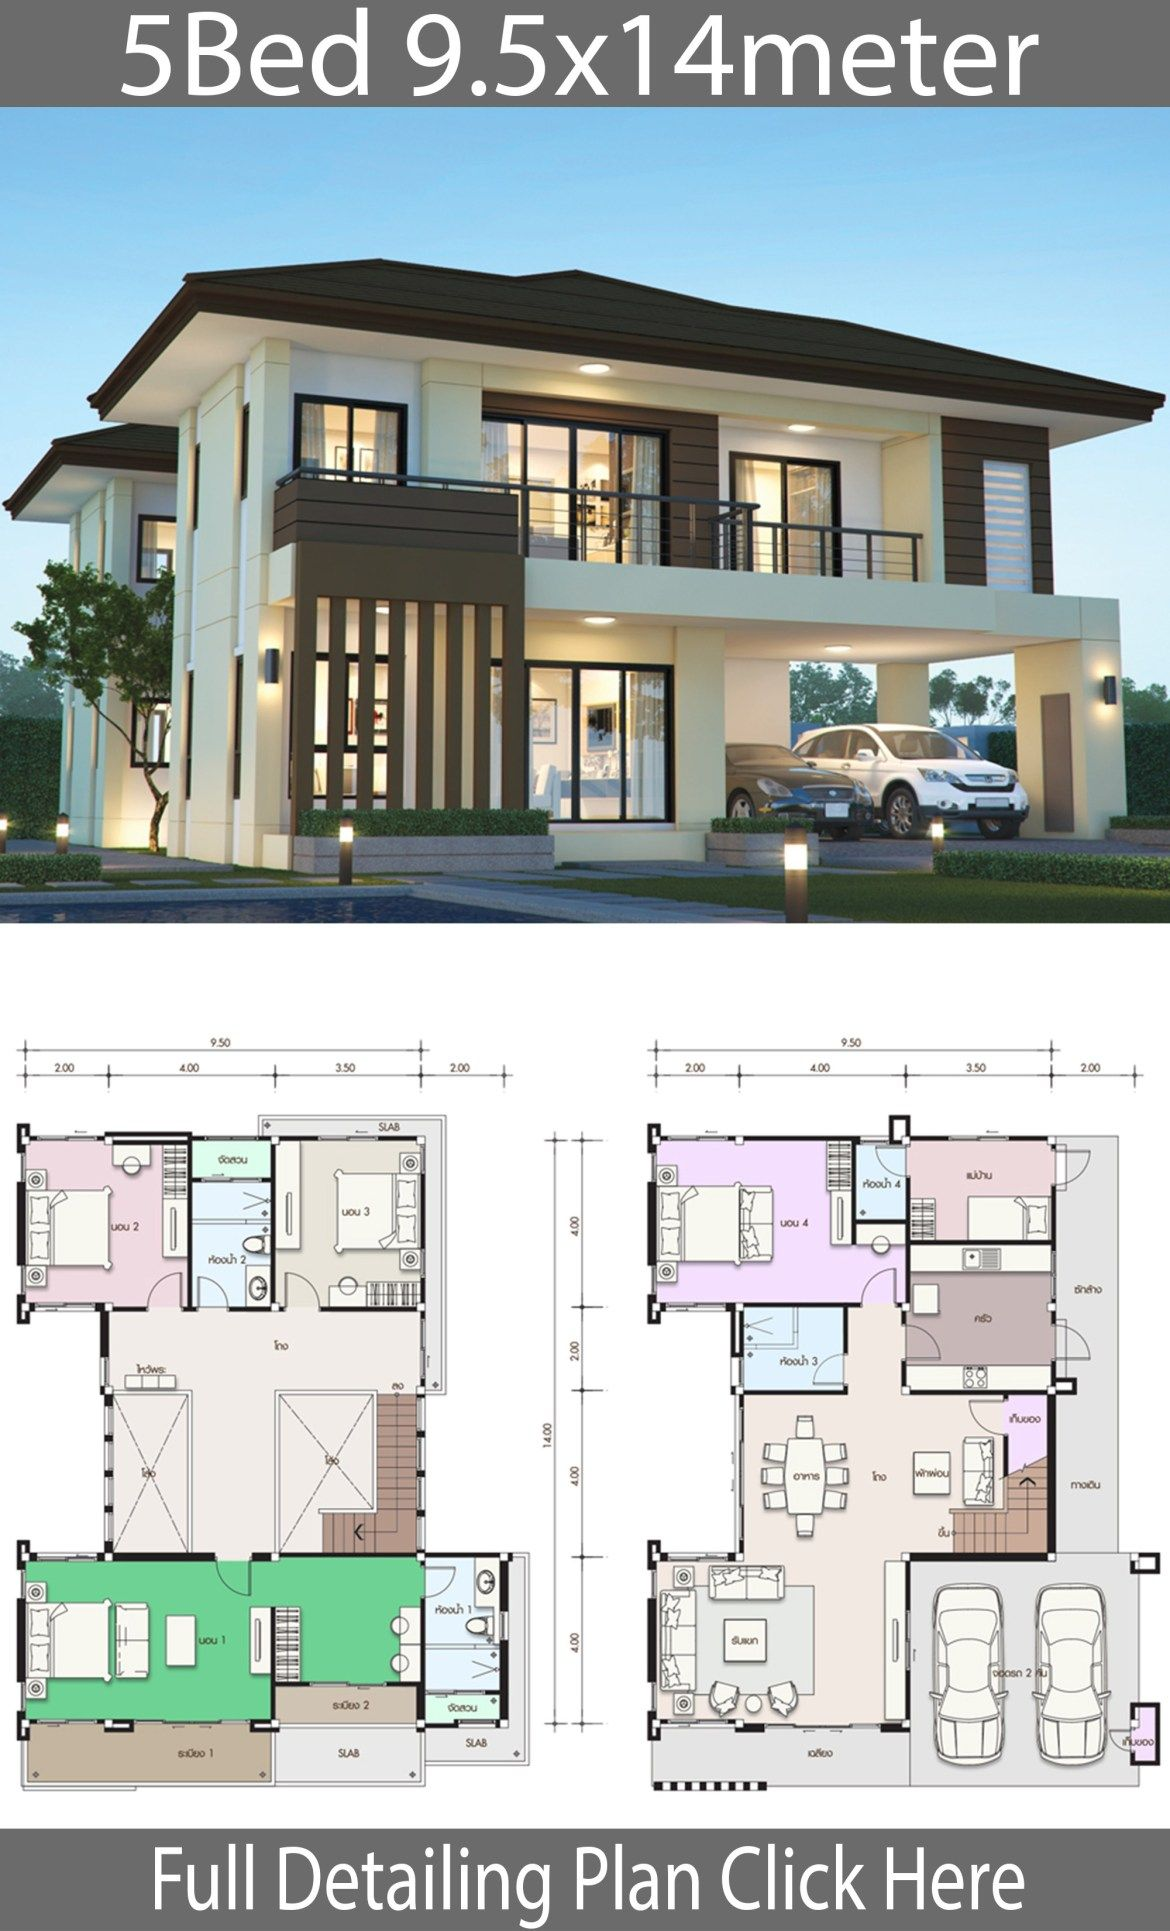 House Design Plan 9 5x14m With 5 Bedrooms Architectural House Plans 2 Storey House Design Home Design Plans